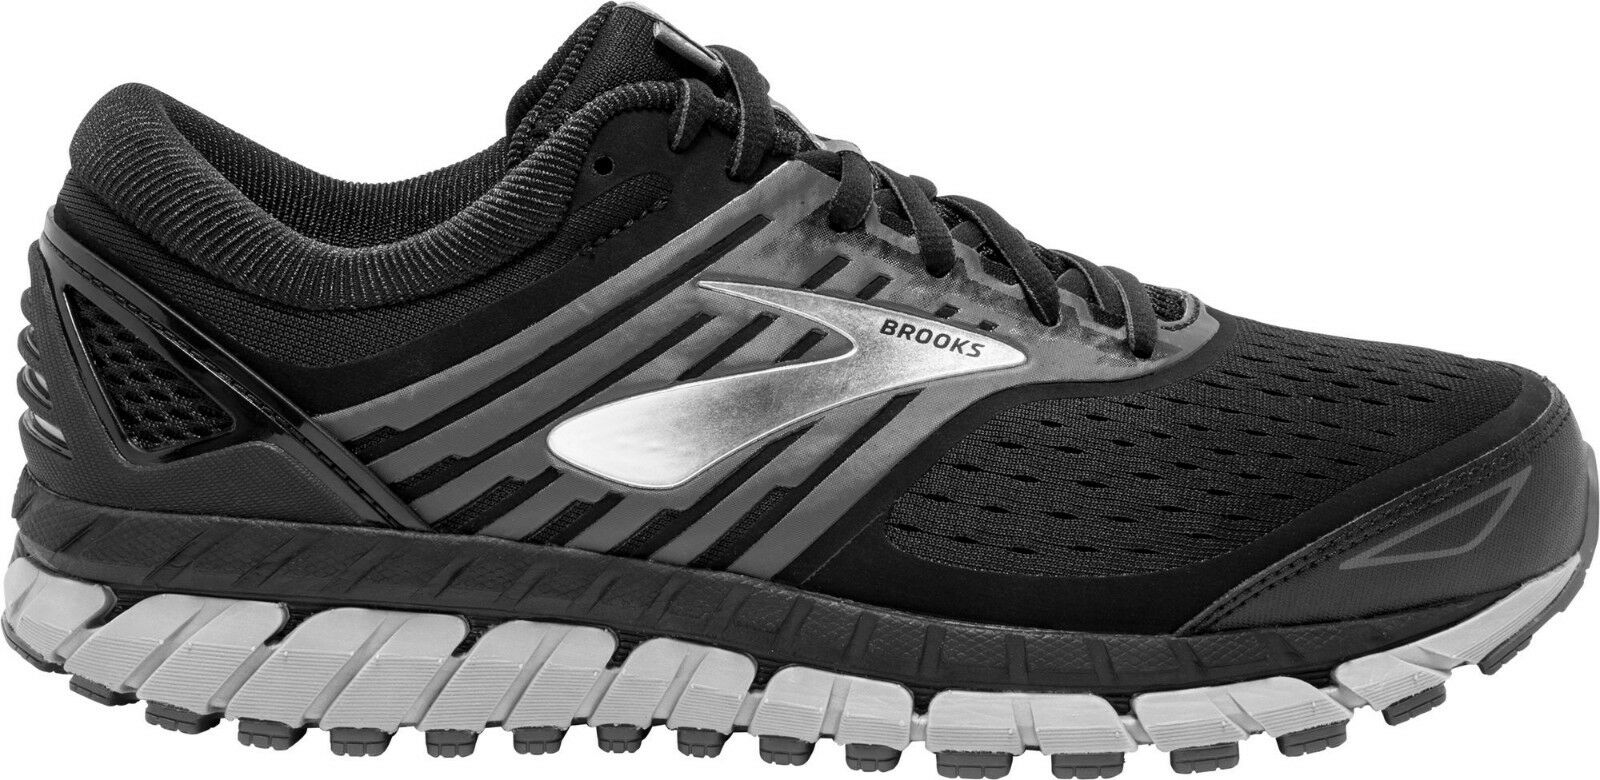 Authentic Brooks Beast 18 Mens Mens Mens Control Running shoes (4E) (004) 9828d7